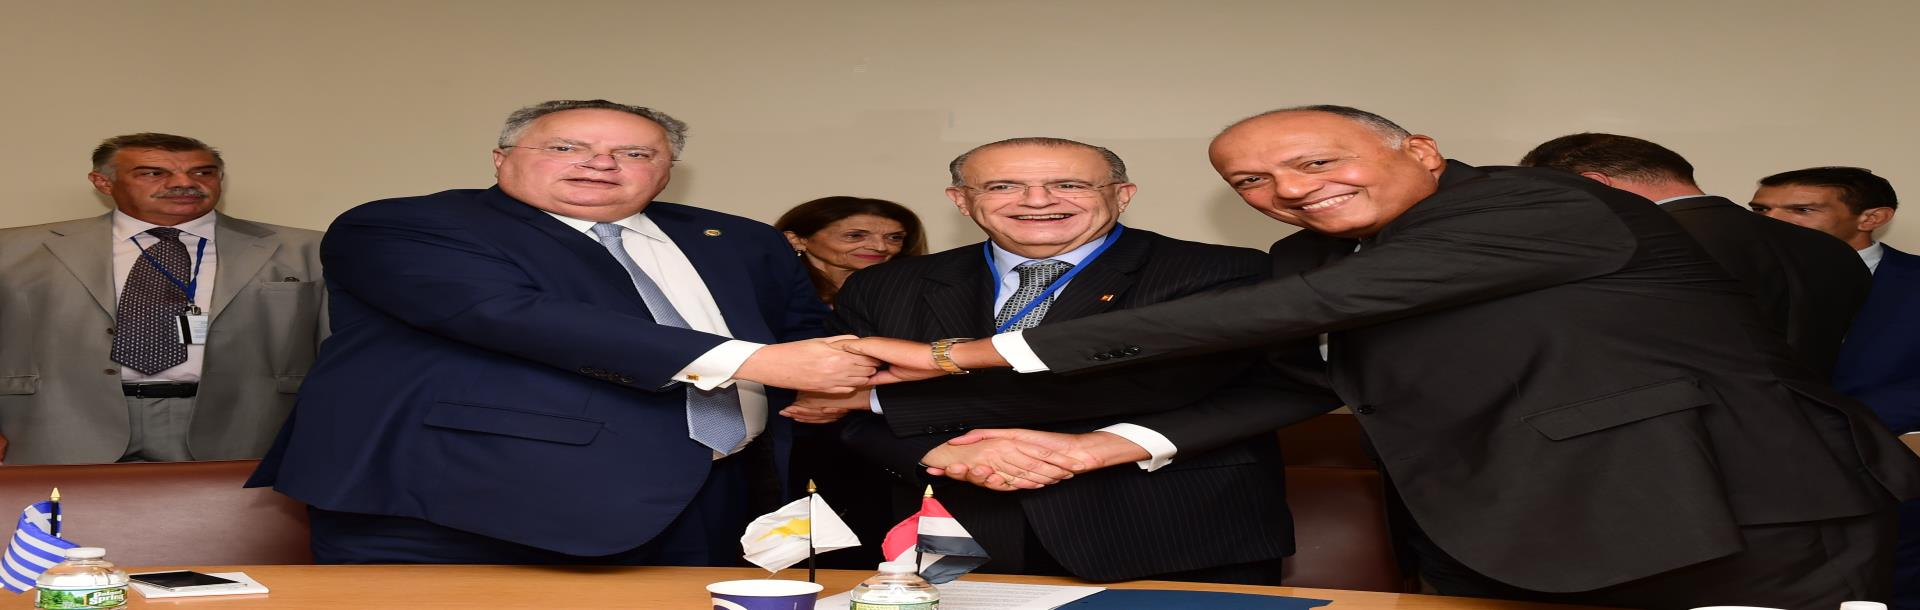 Joint Communique of the Trilateral Meeting of the Foreign Ministers of the Republic of Cyprus, the Arab Republic of Egypt and the Hellenic Republic